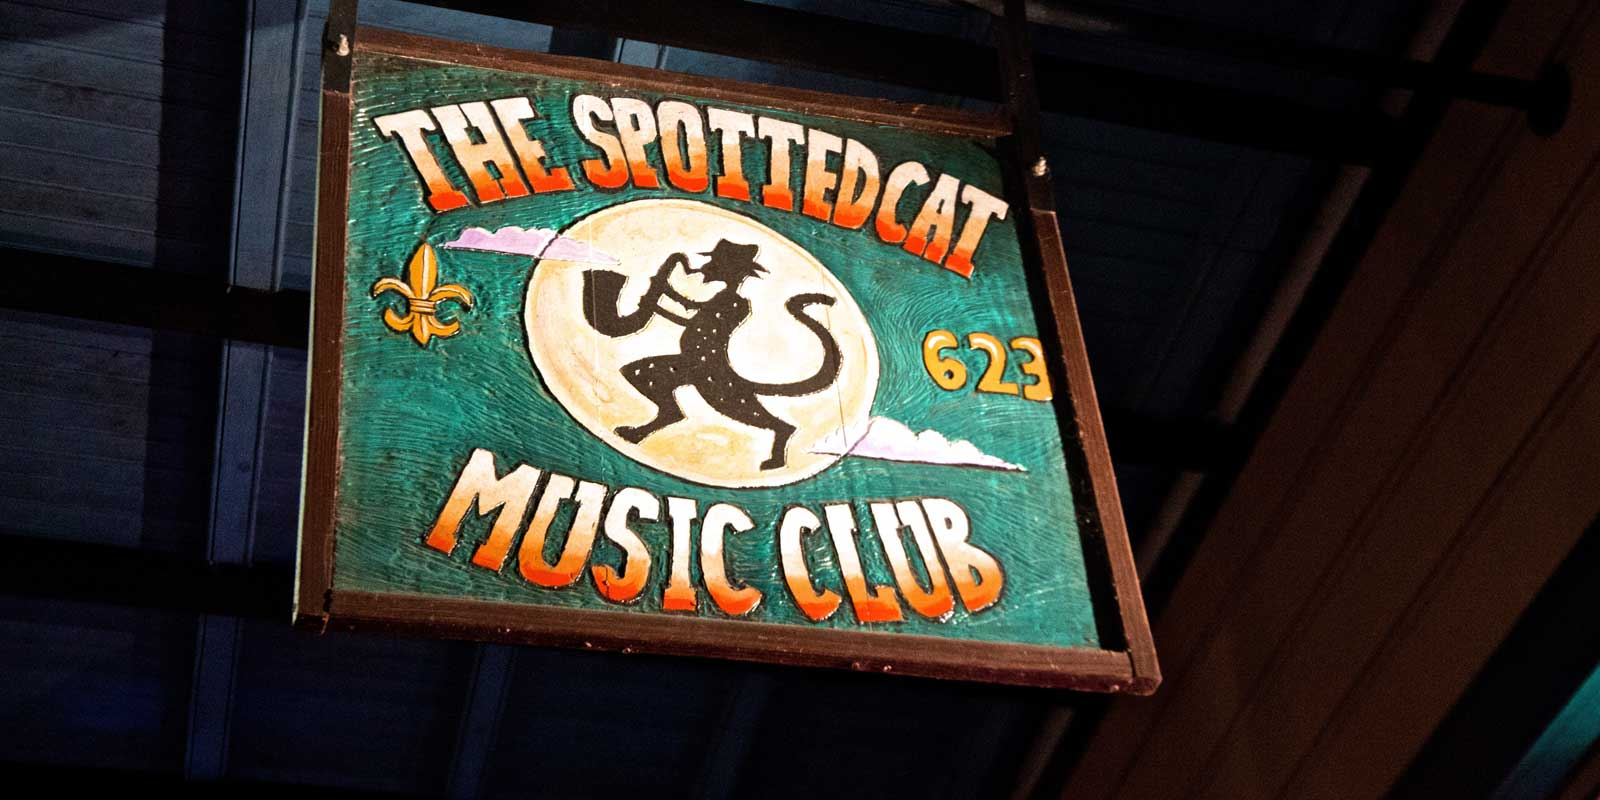 Photo of the sign for The Spotted Cat Music Club in New Orleans, Louisiana